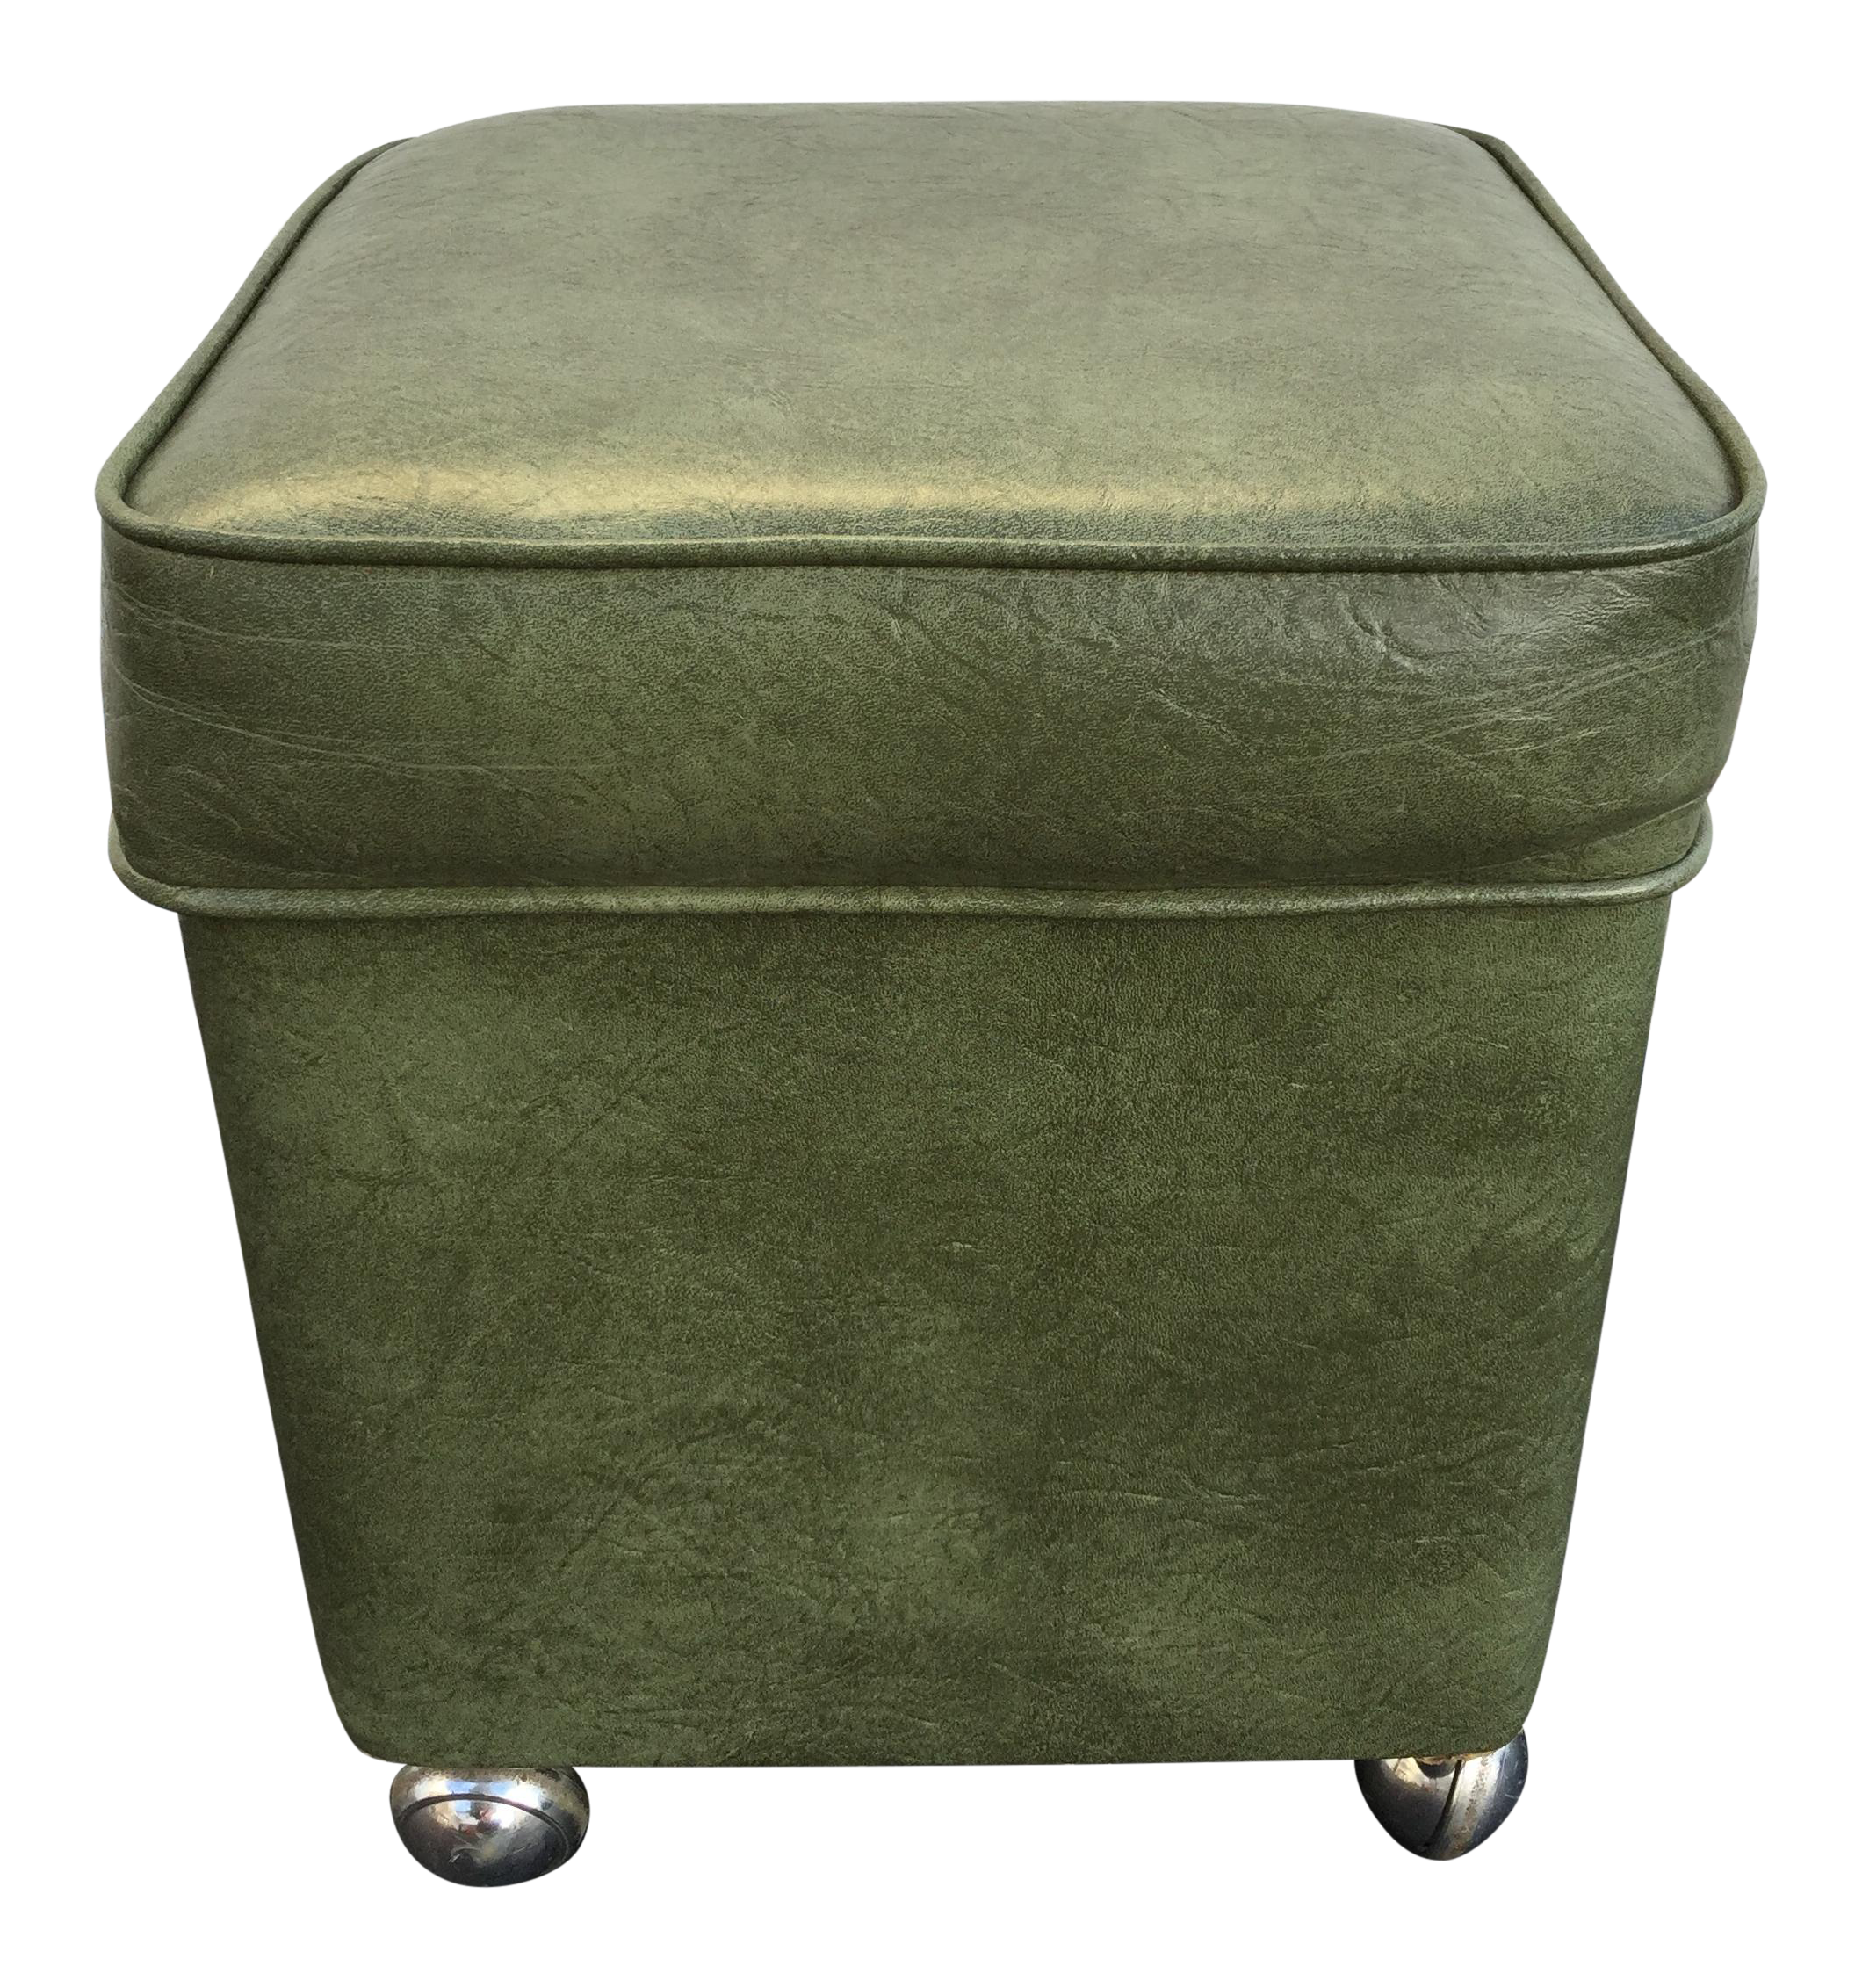 Mid century green vinyl storage hassock on casters chairish for Small storage hassocks